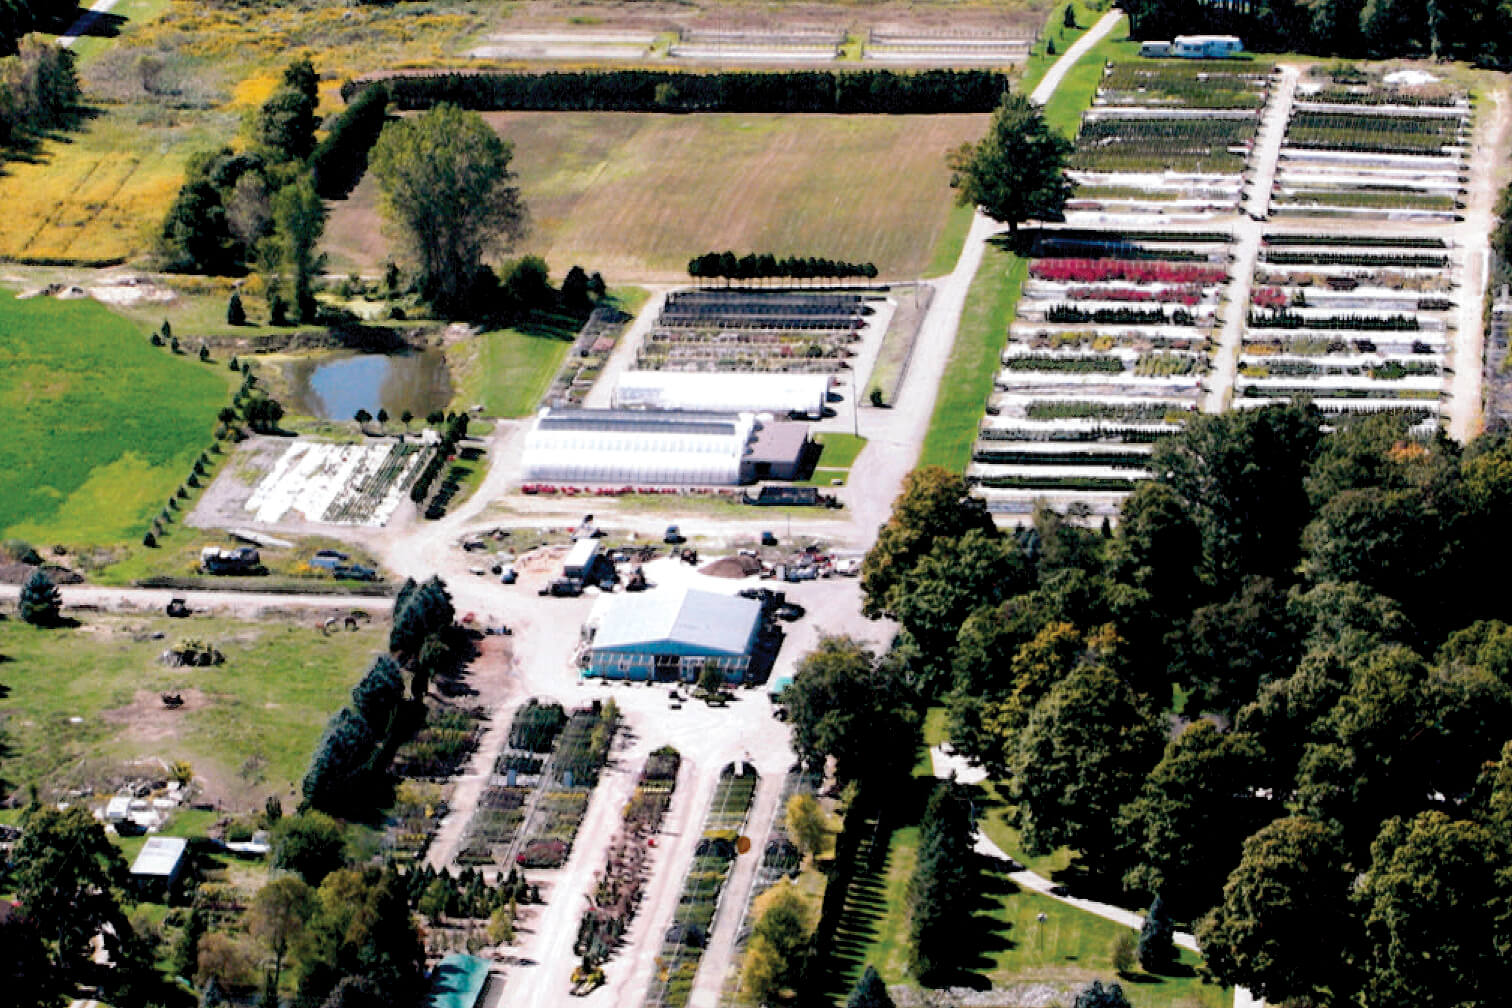 aerial view of a nursery operation